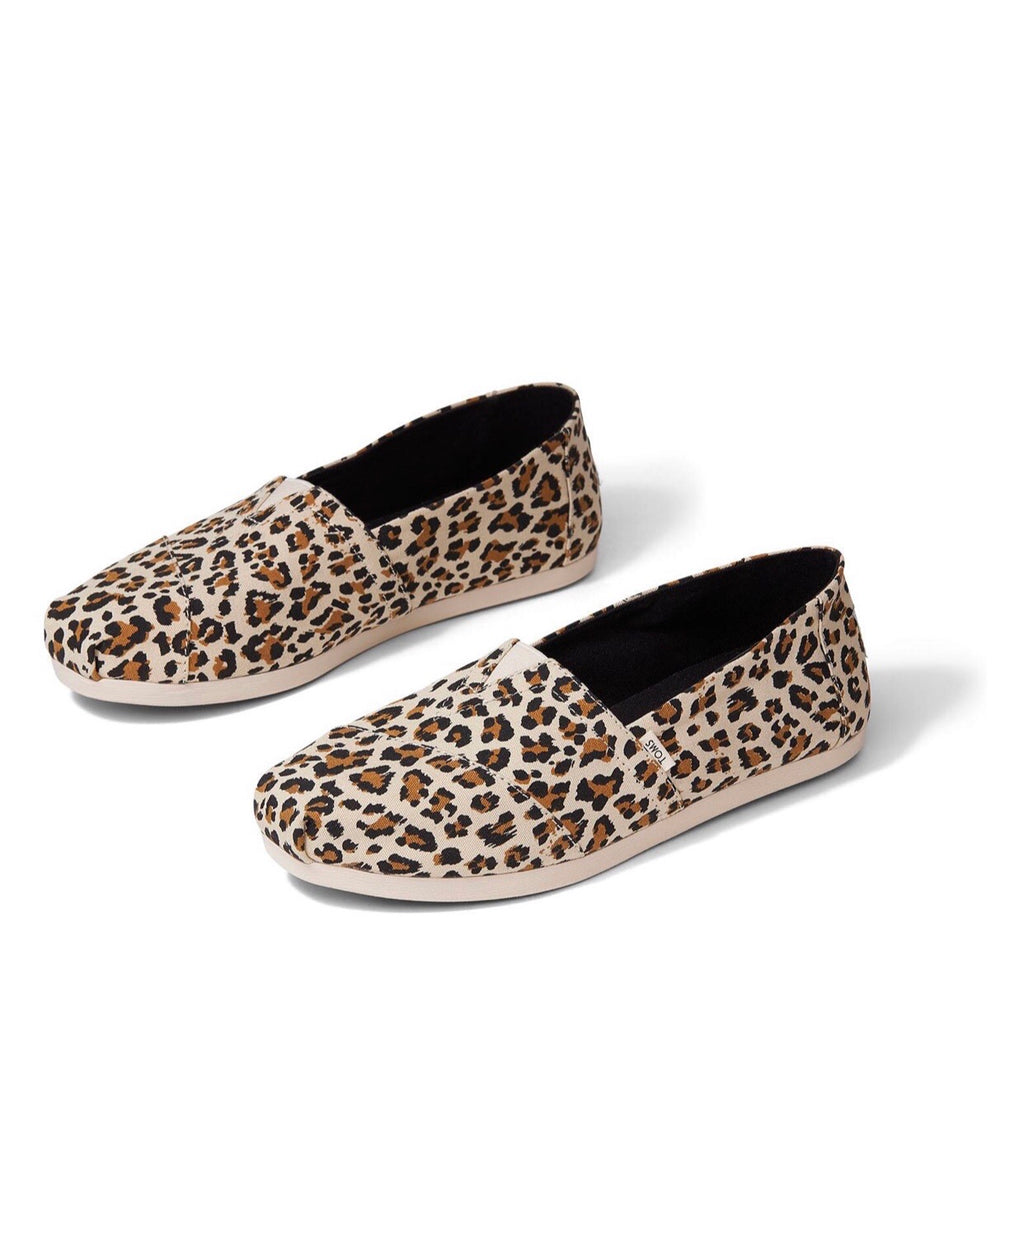 The Classic Birch Leopard Shoe By Toms